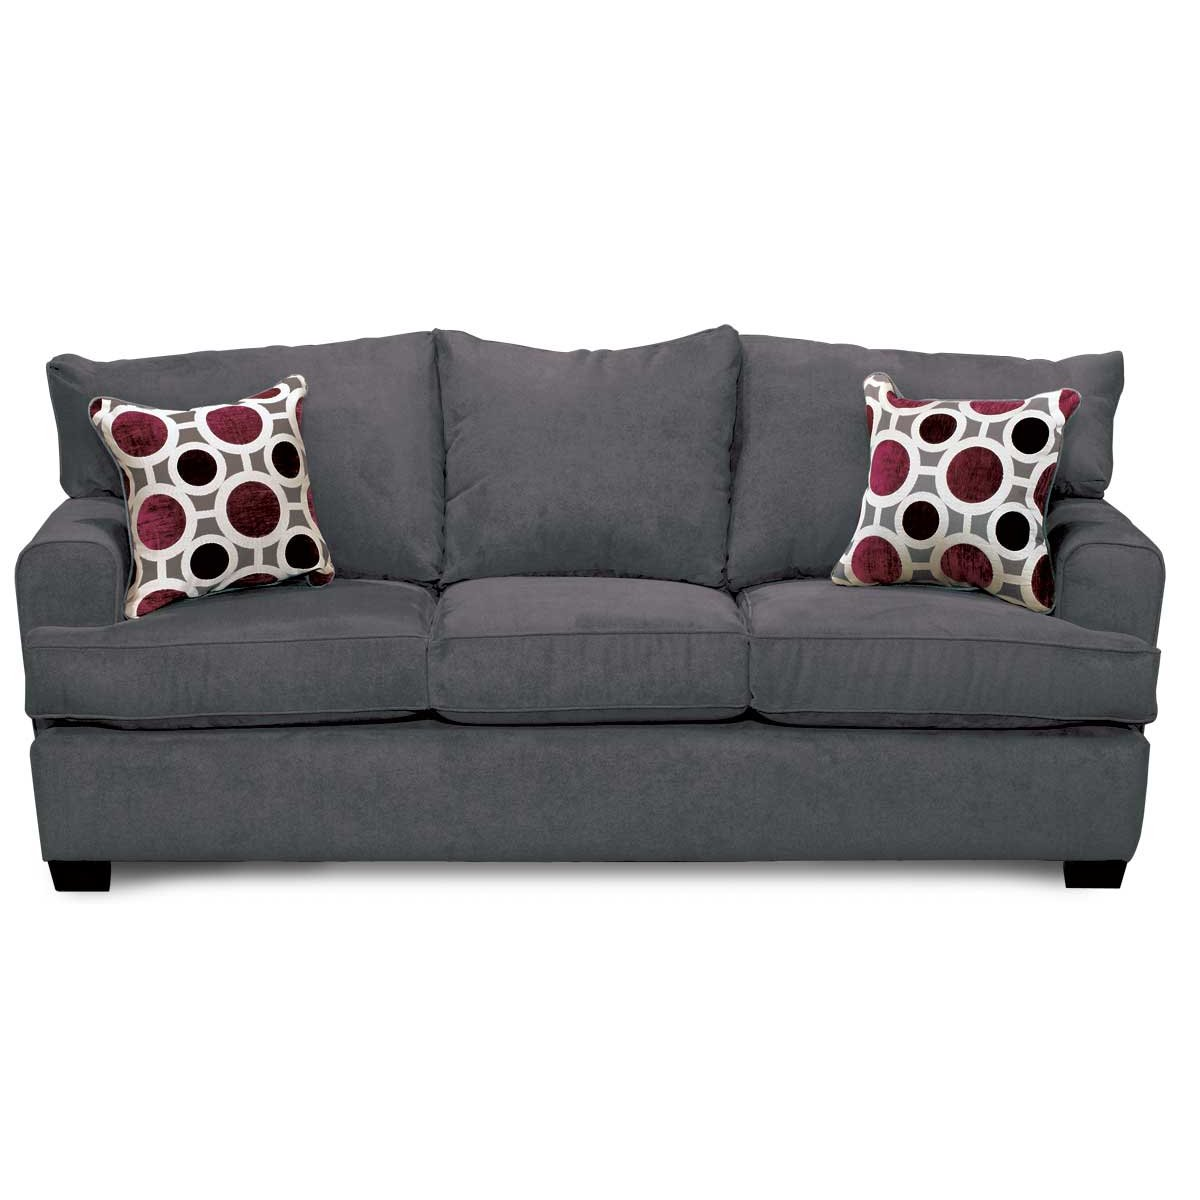 Gray Couches Part - 32: ... Casual Contemporary Sterling Gray Sofa - City